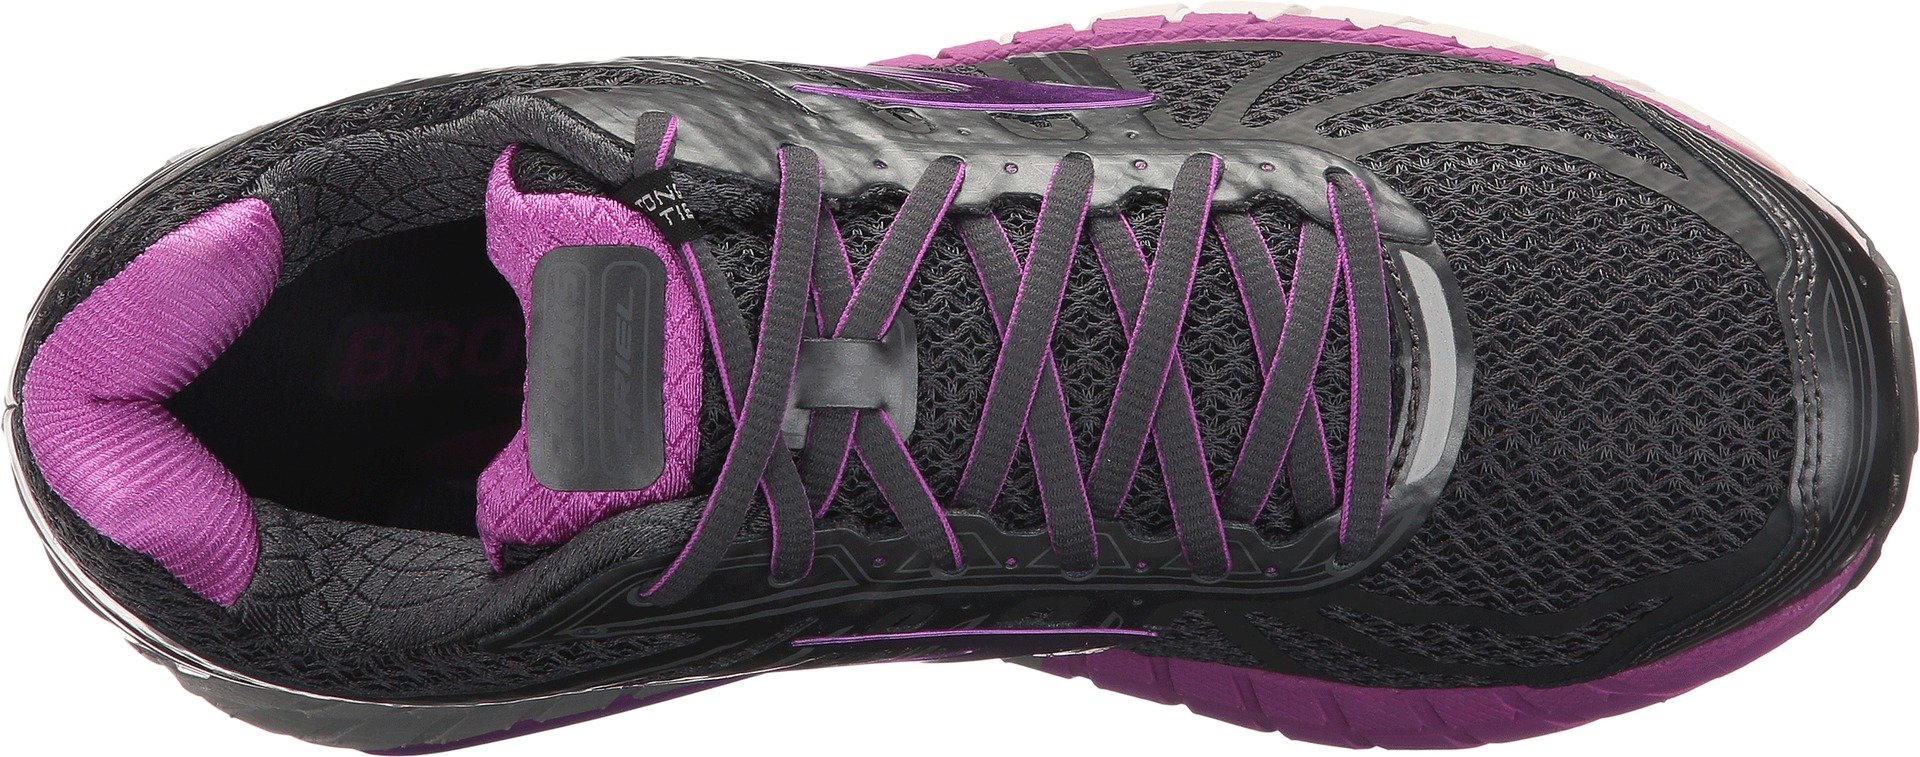 Brooks Women's Ariel '16 Anthracite/Purple Cactus Flower/Primer Grey 7 B US by Brooks (Image #2)